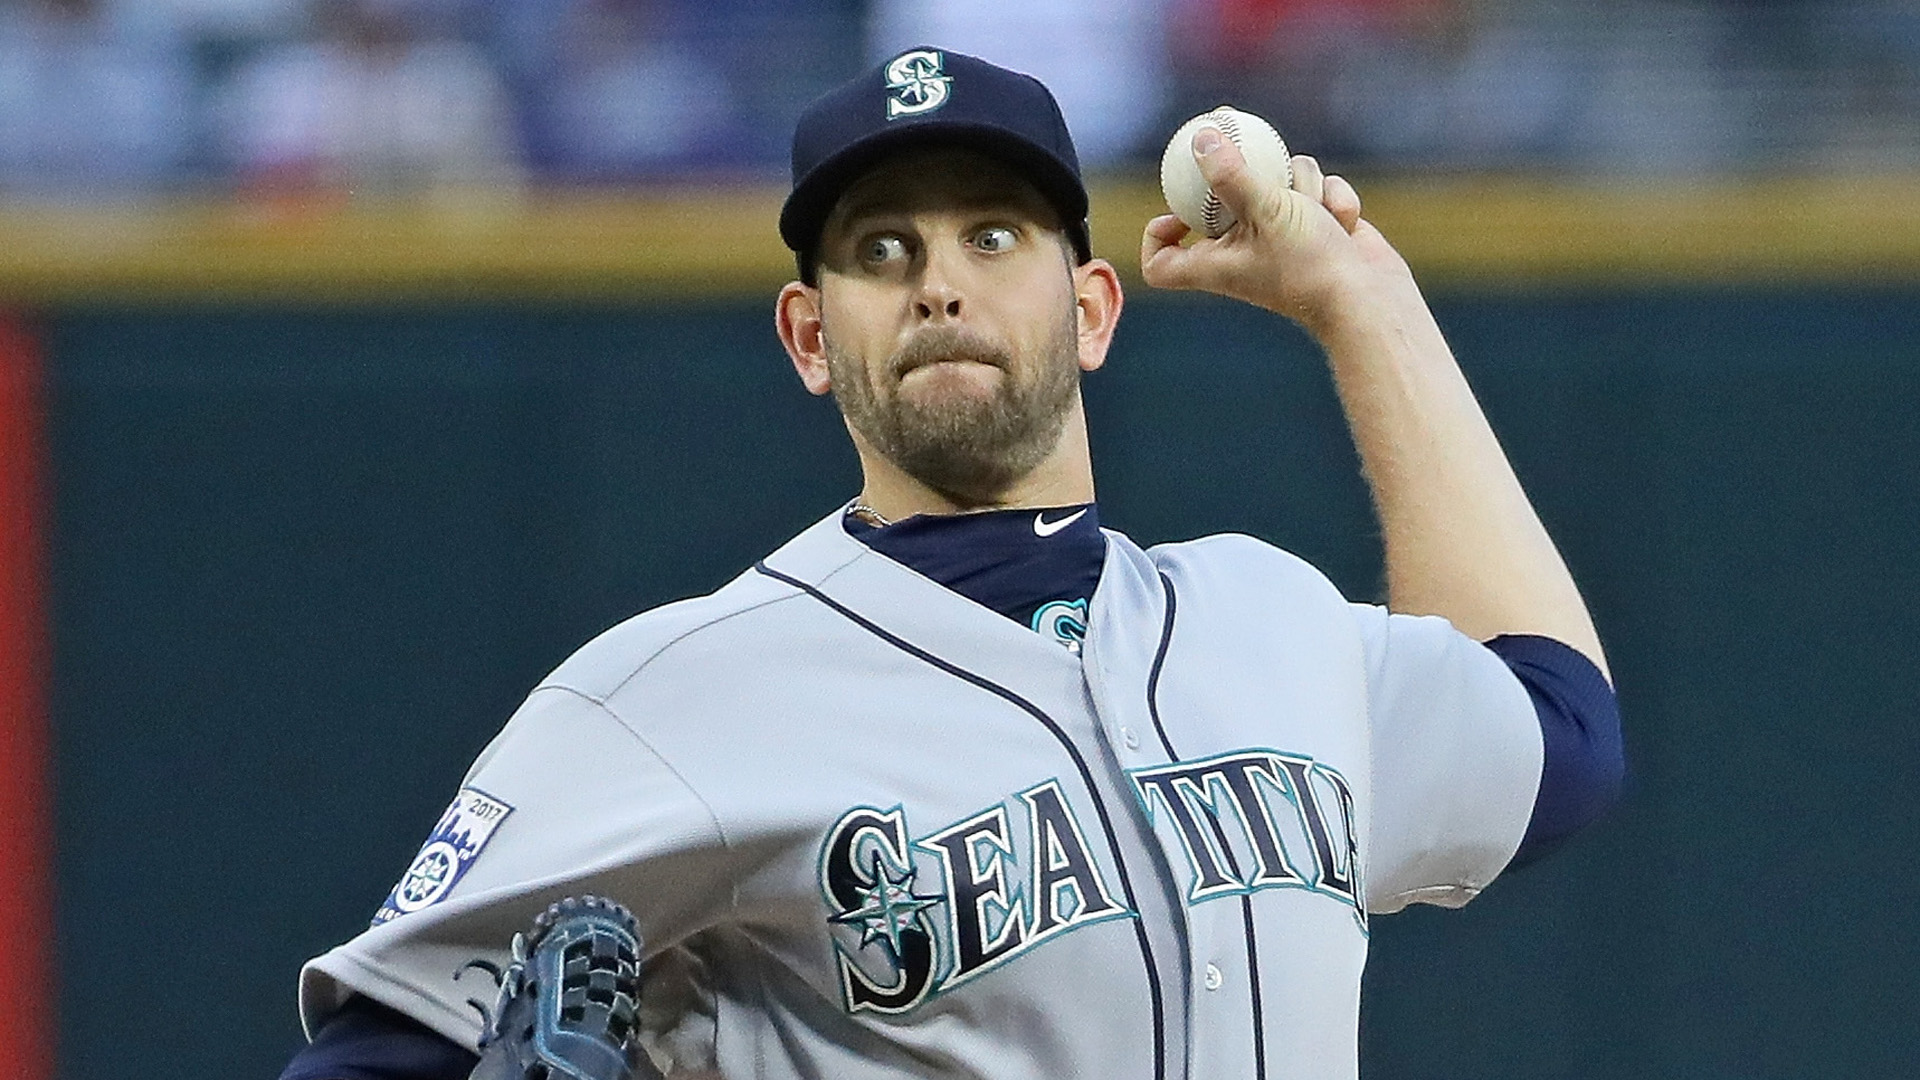 James Paxton injury update: Mariners ace placed on 10-day DL